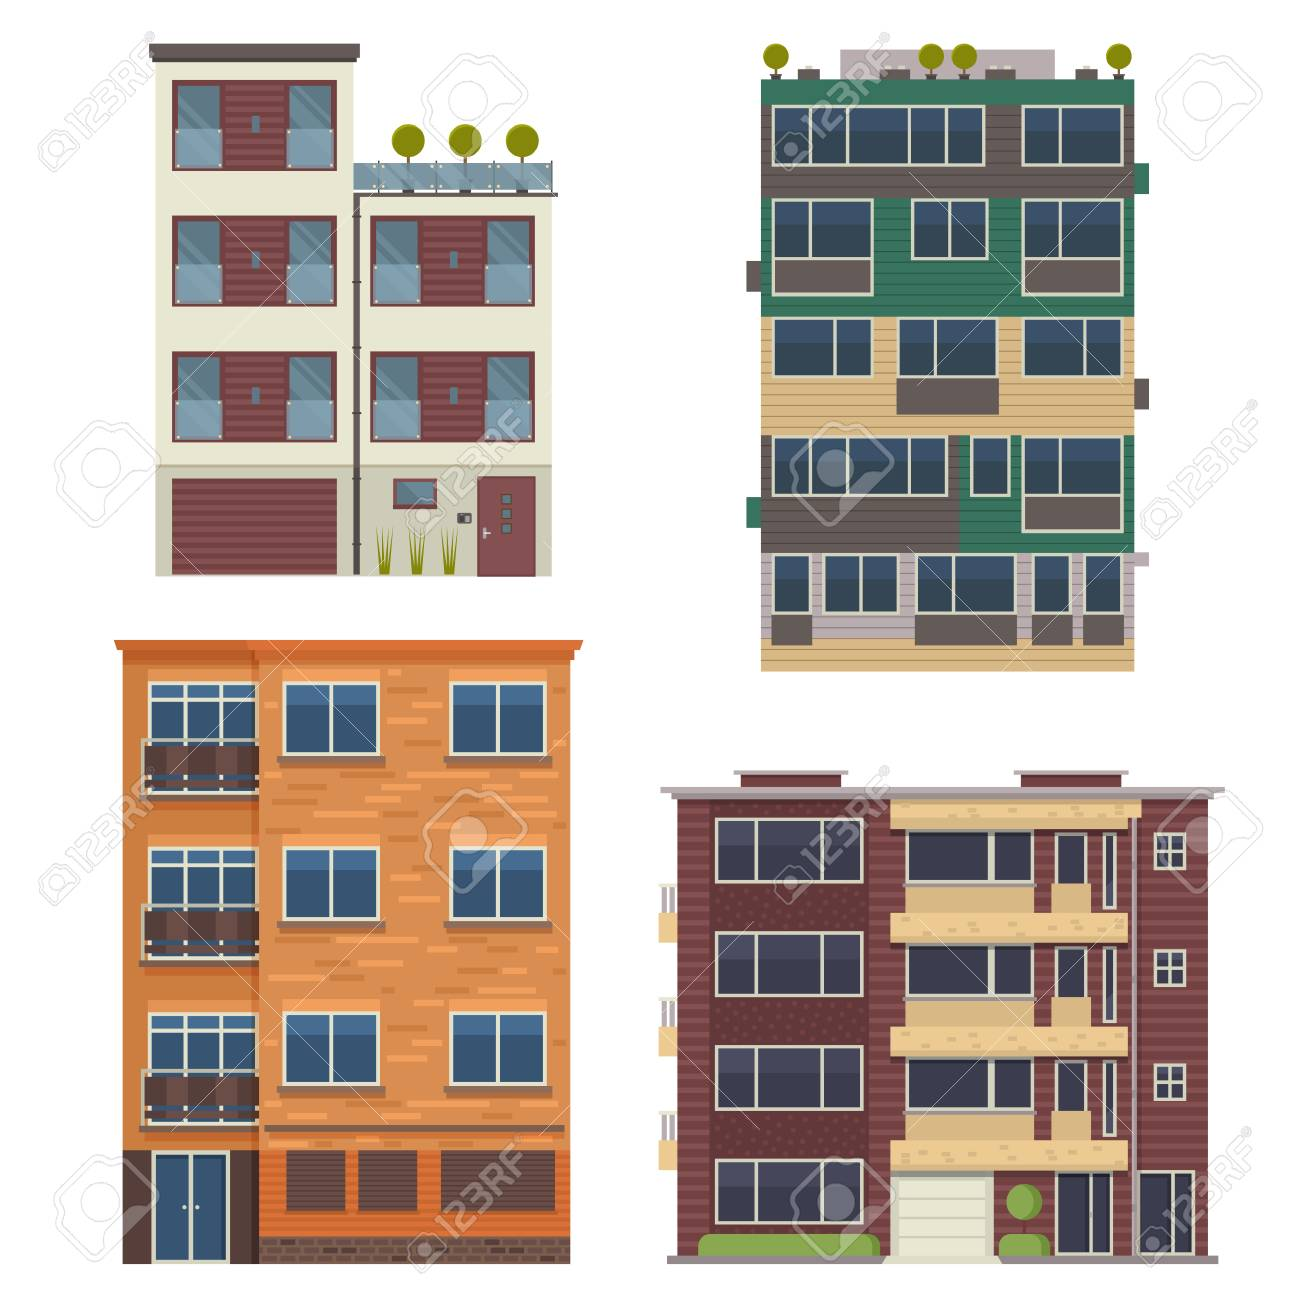 modern block city apartment buildings for town constructor or